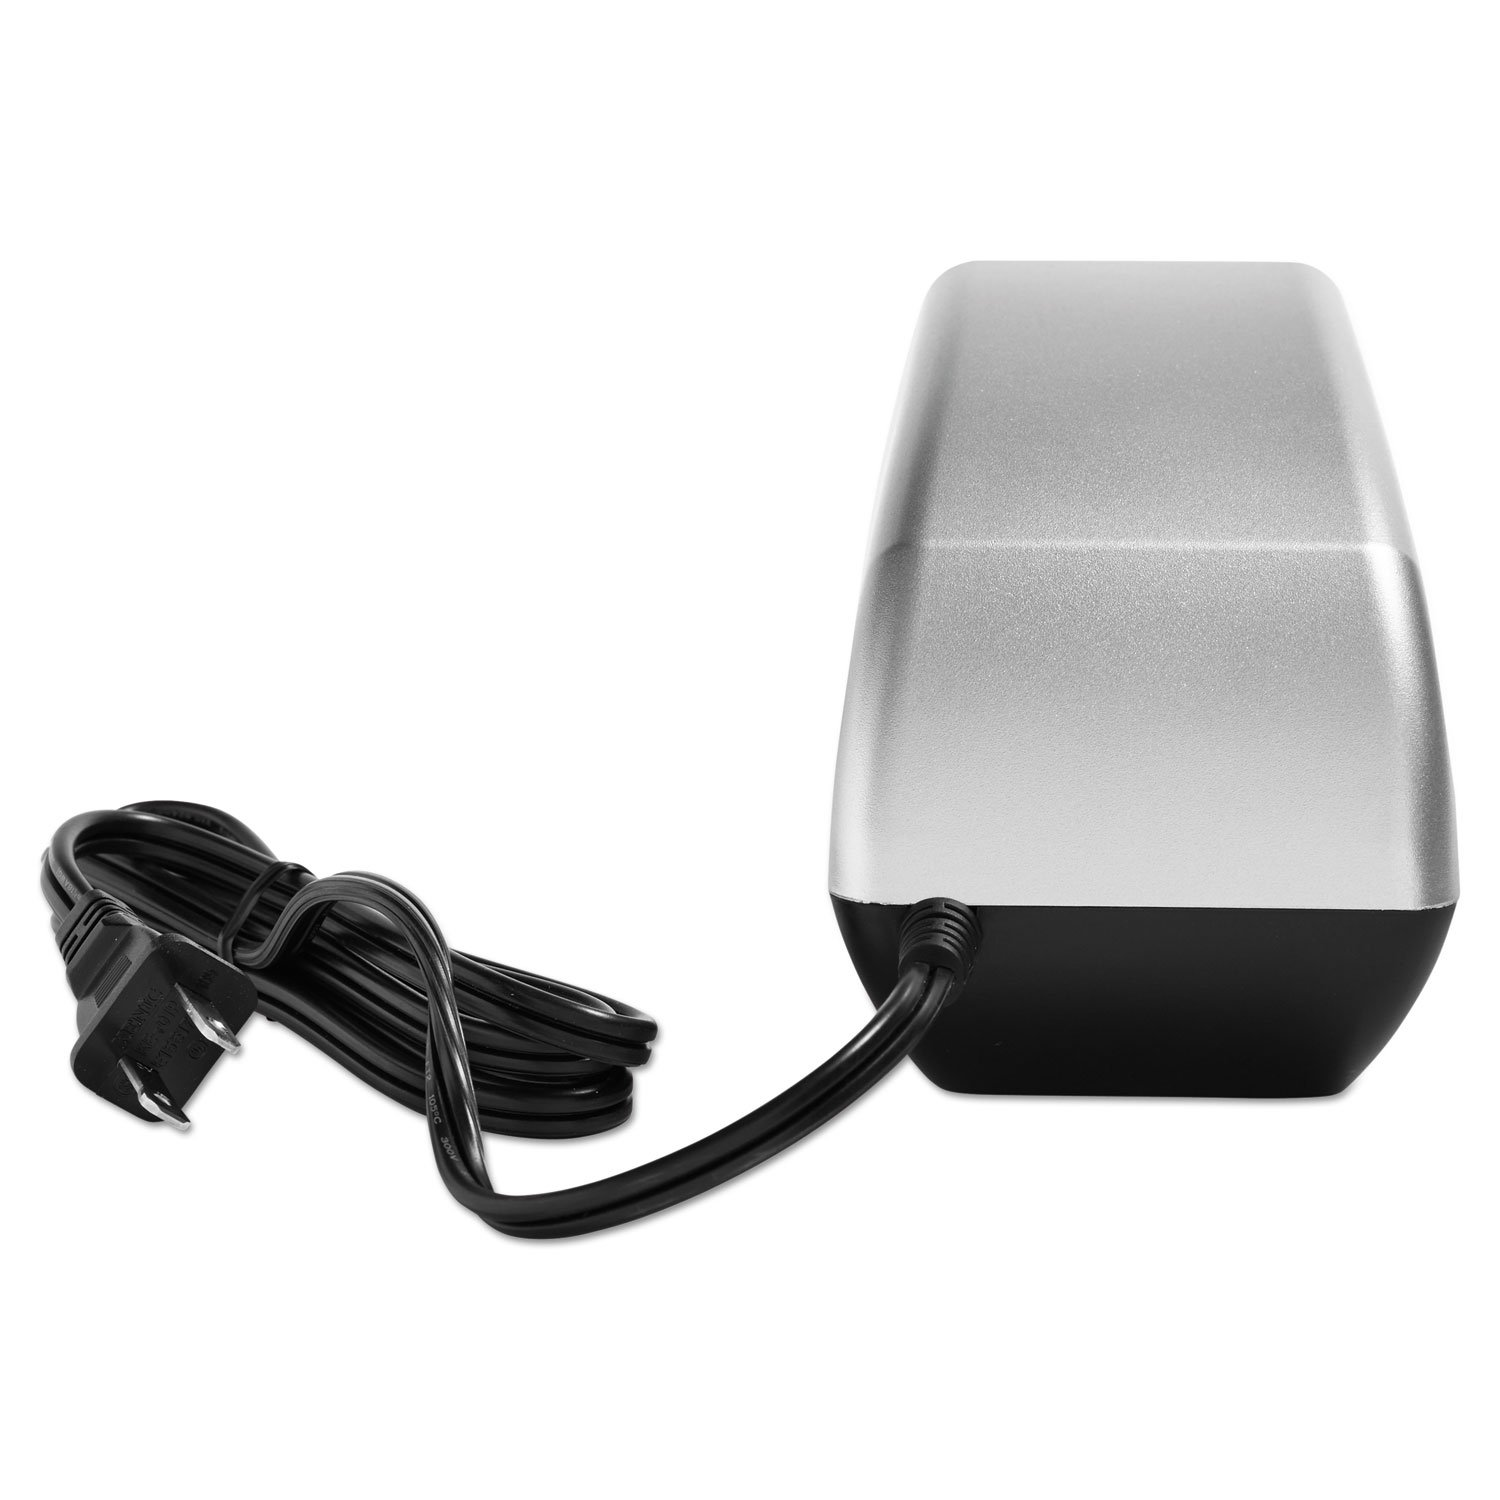 X-ACTO 1900 Helix Office Electric Pencil Sharpener, Silver/Black by X-Acto (Image #3)